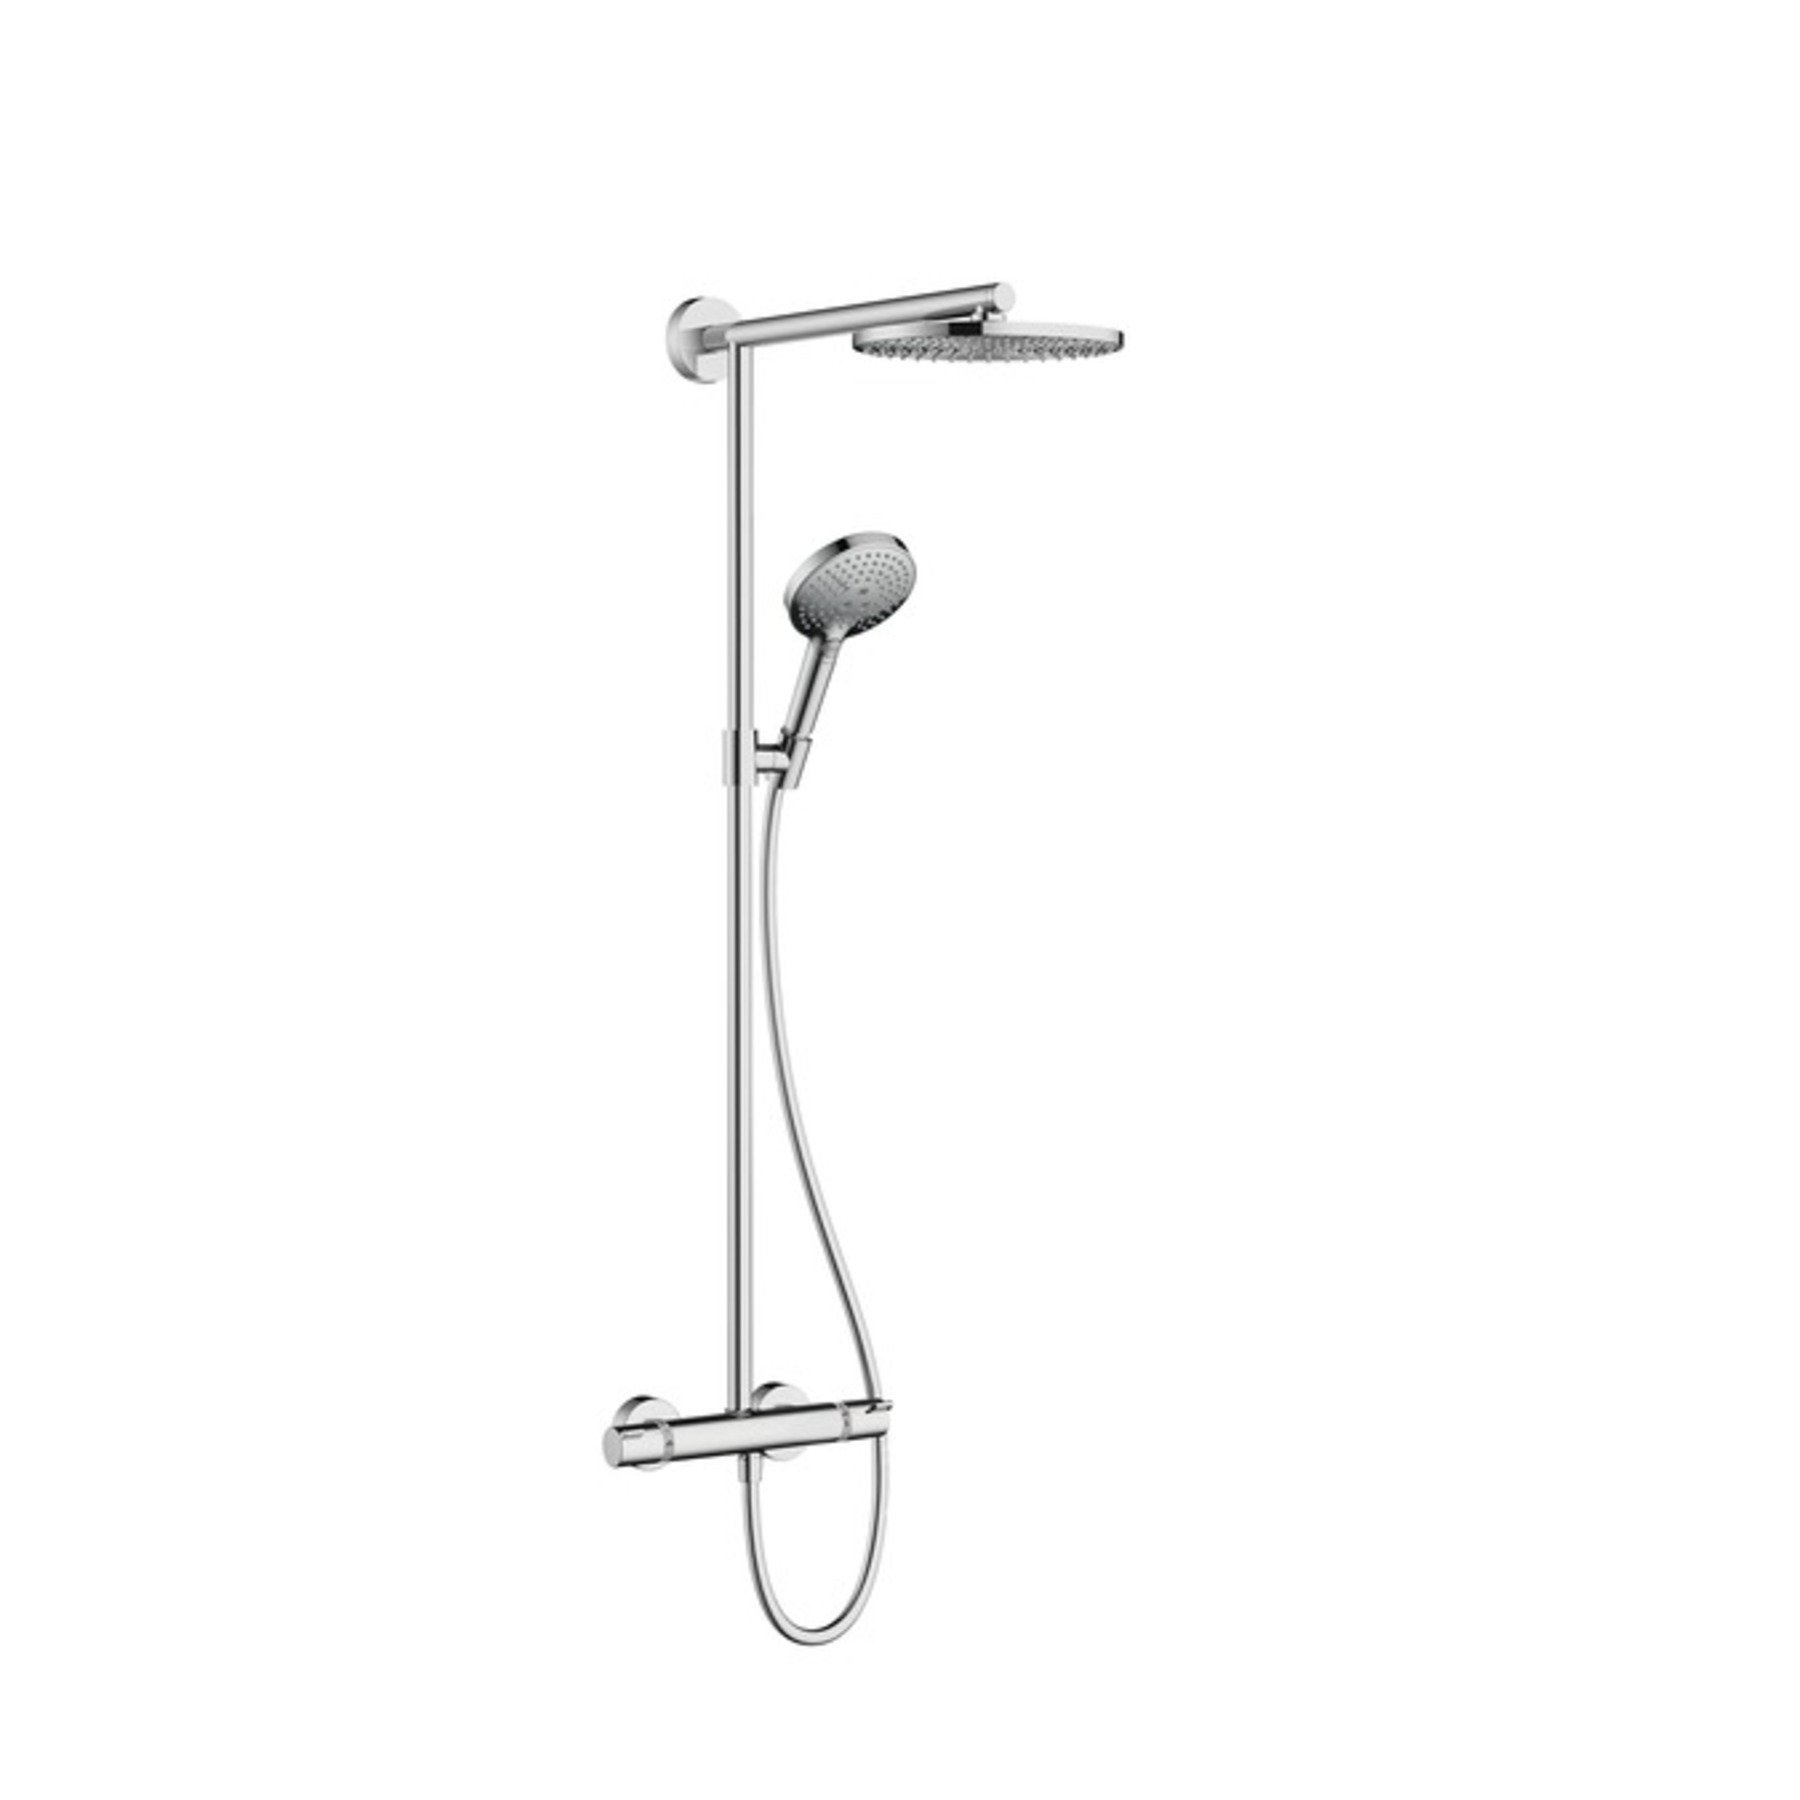 hansgrohe raindance air 240 showerpipe met douchethermostaat chroom in de aanbieding kopen. Black Bedroom Furniture Sets. Home Design Ideas